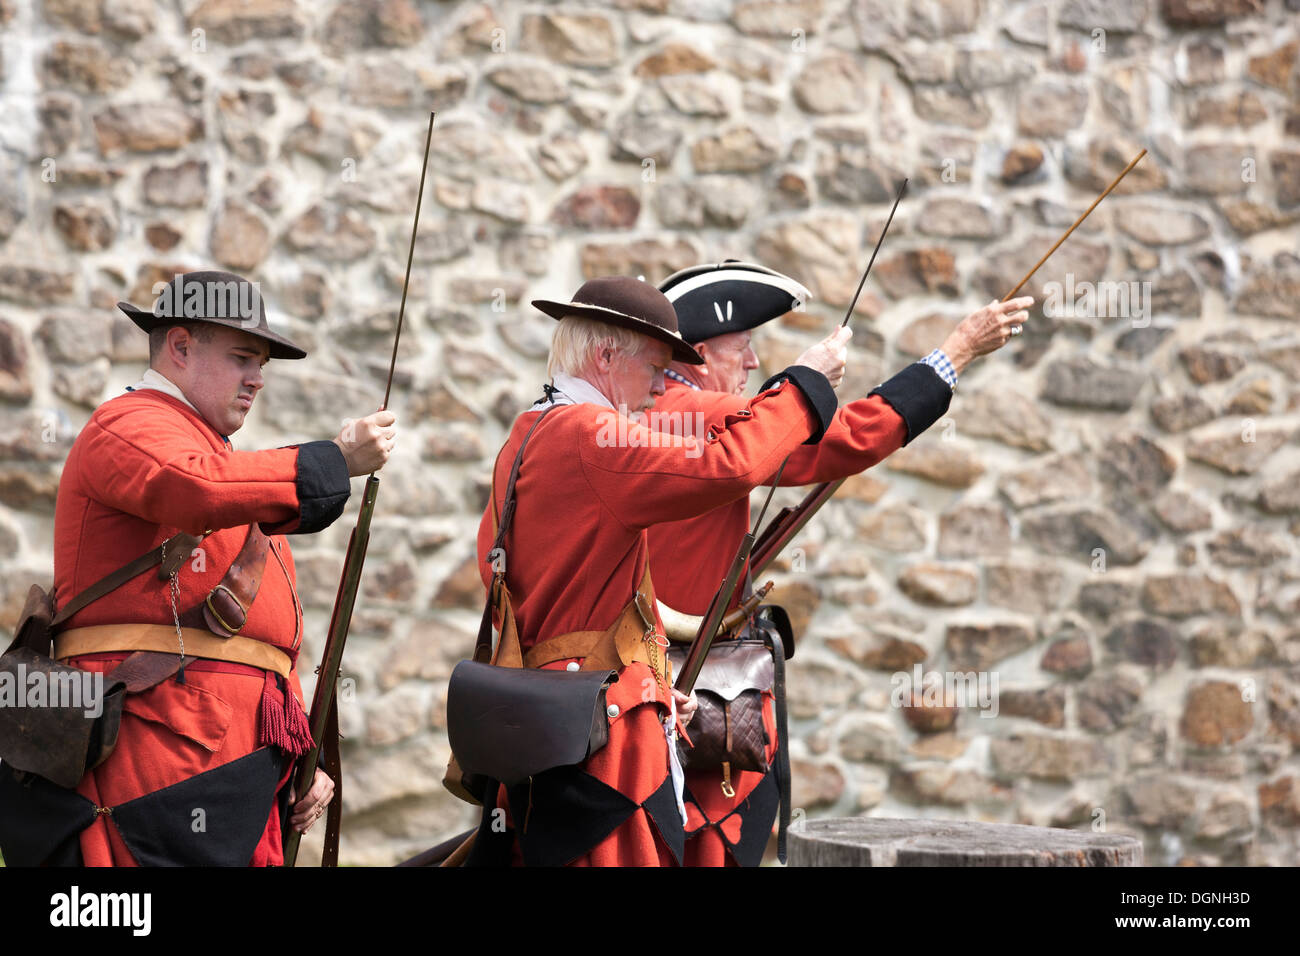 Soldiers loading flintlock muskets in re-enactment French & Indian American Revolution Revolutionary War of Independence - Stock Image